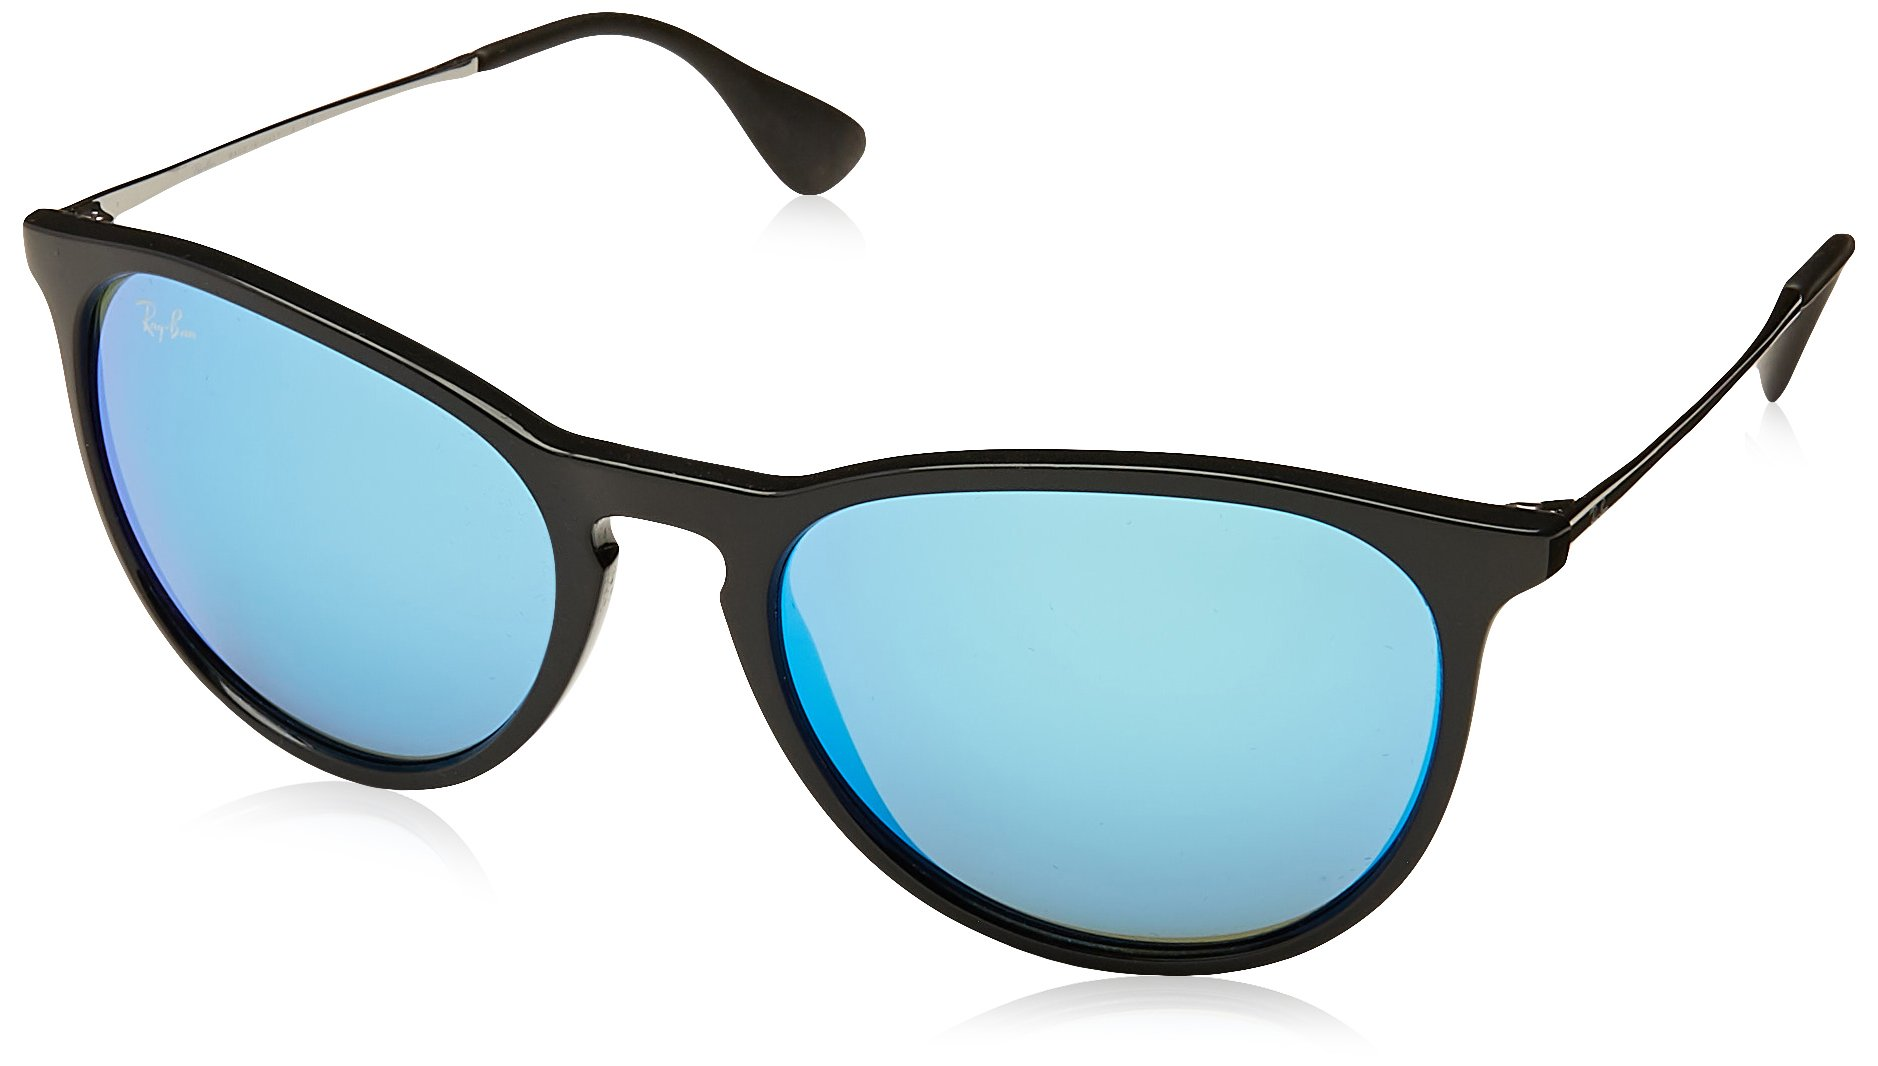 Ray-Ban ERIKA - BLACK Frame LIGHT GREEN MIRROR BLUE Lenses 54mm Non-Polarized